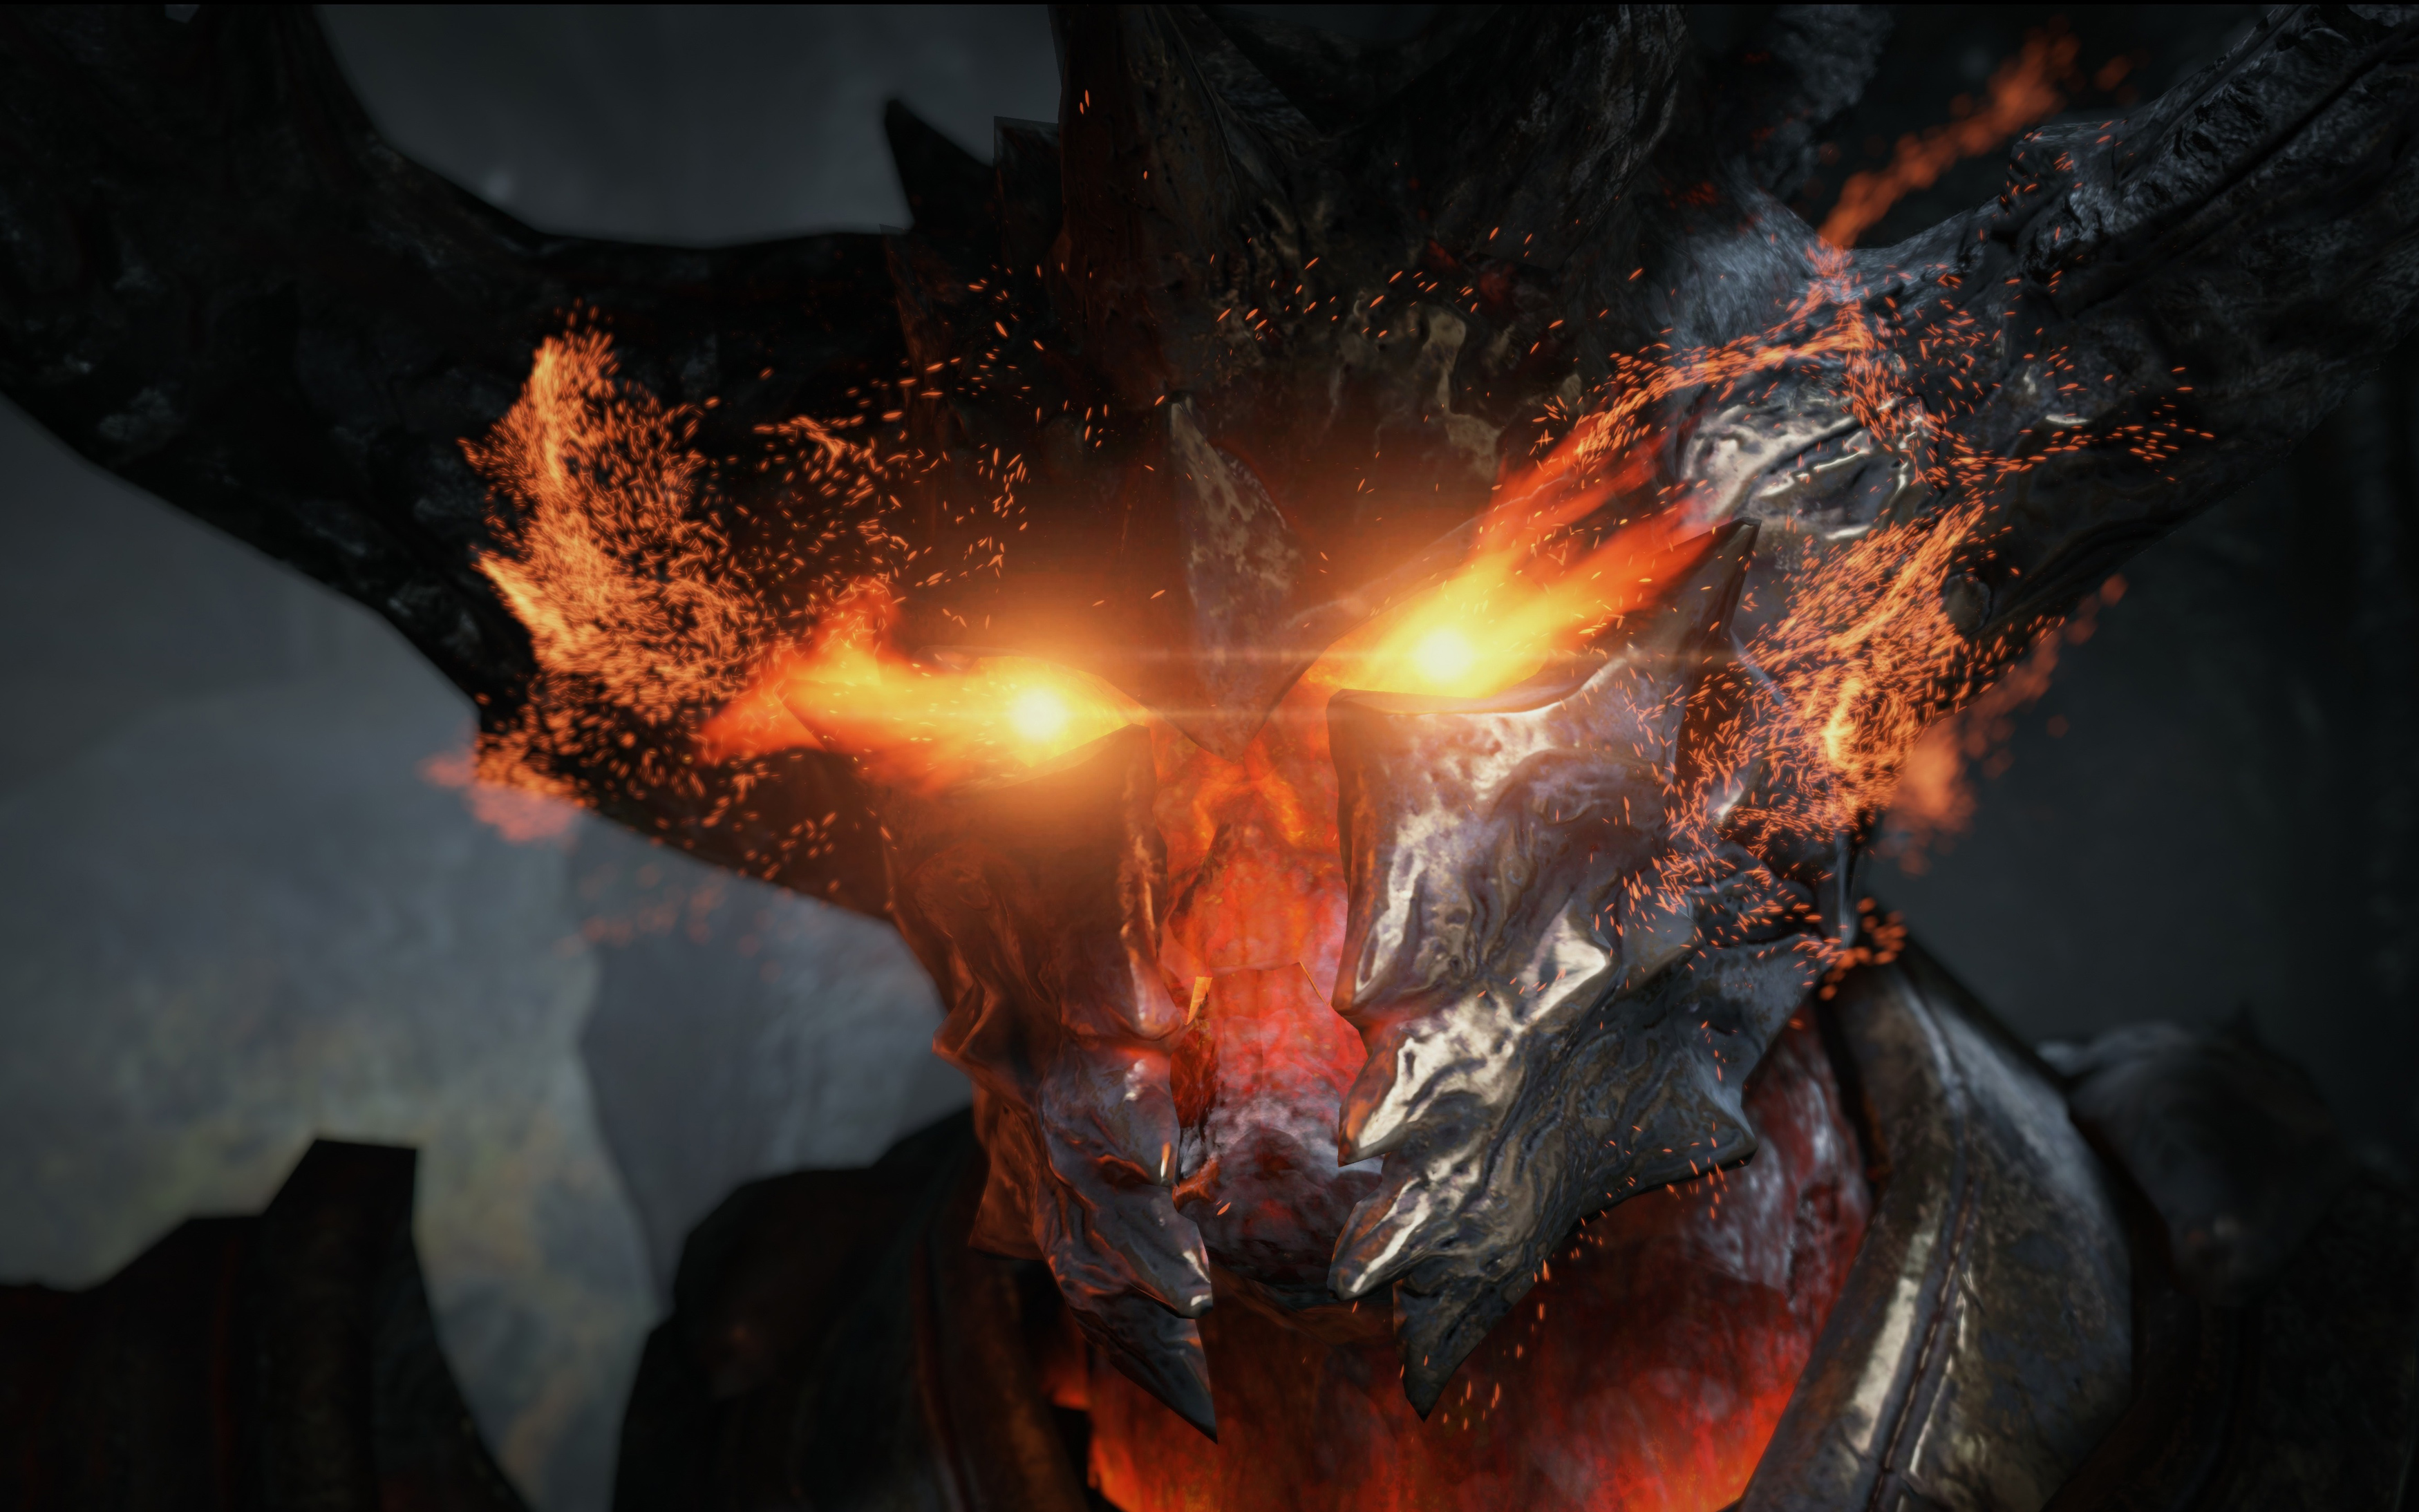 Epic Unreal Engine 4 Wallpapers HD Wallpapers 3500x2188